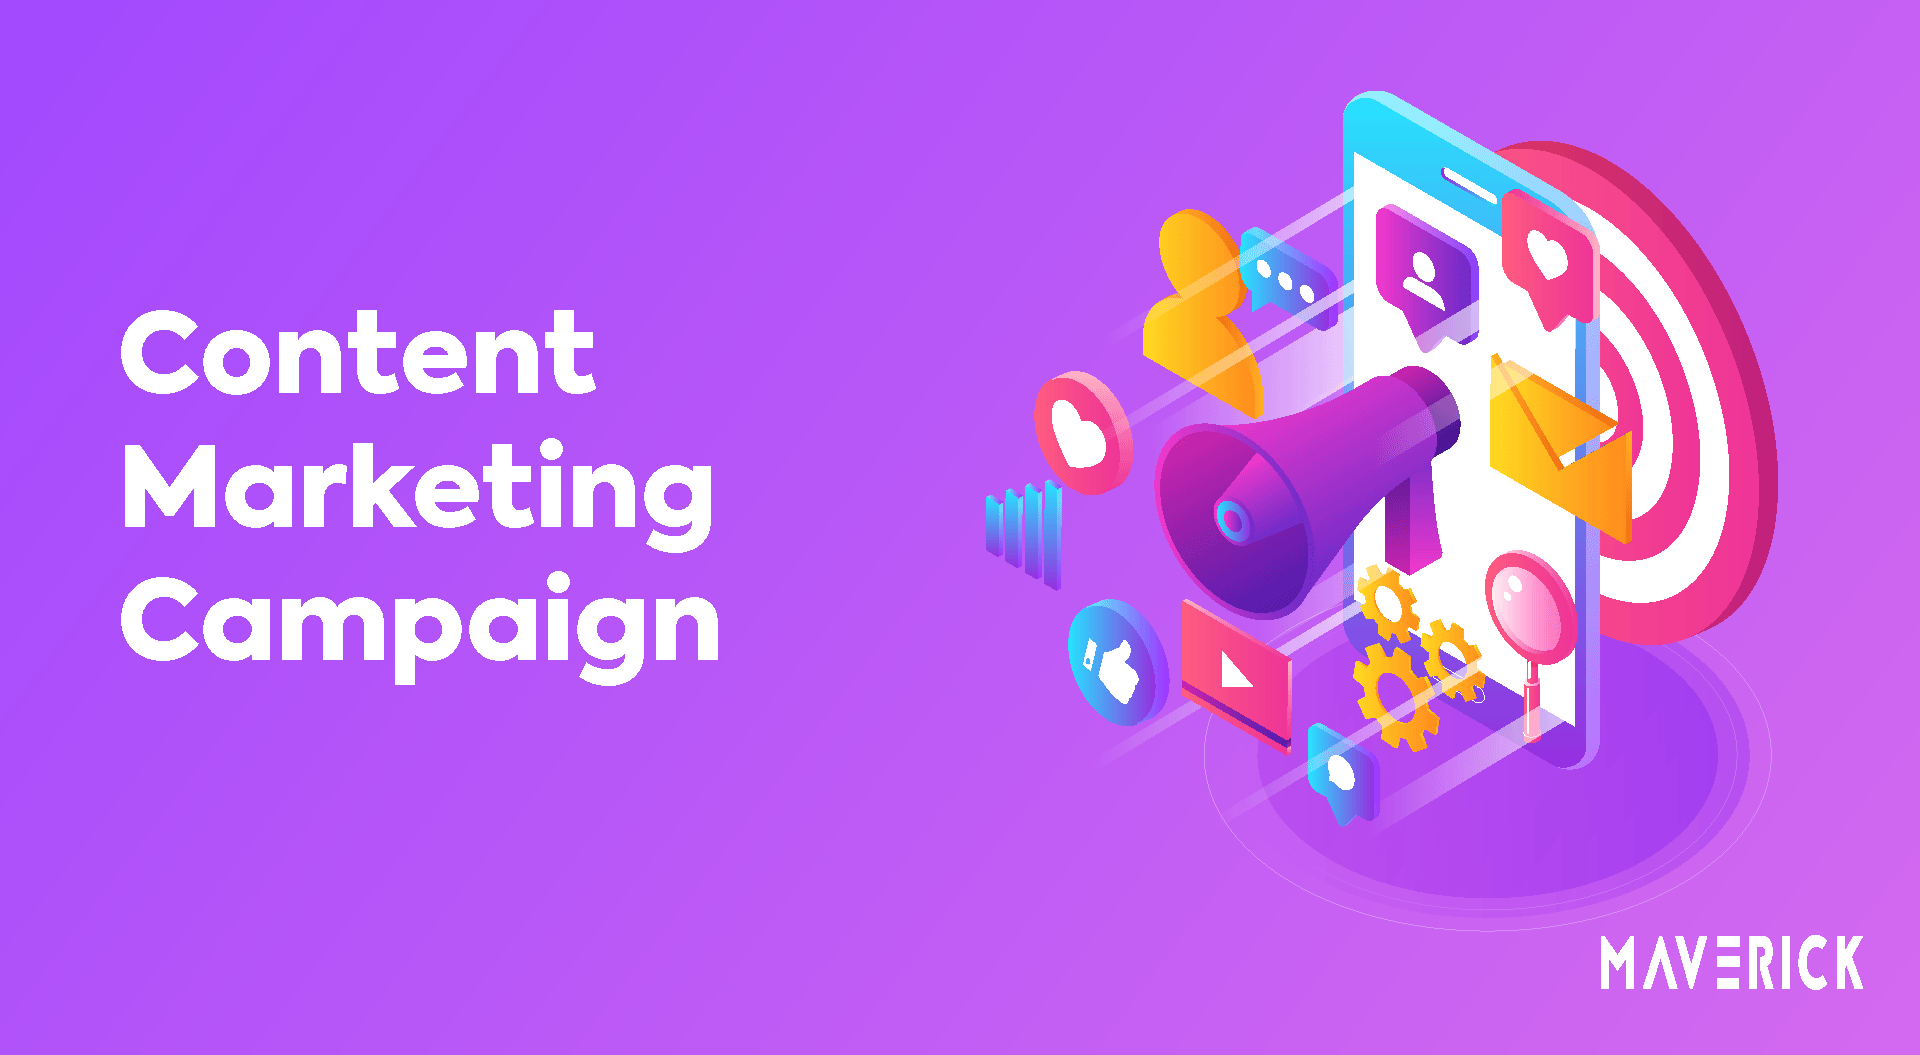 Successful Content Marketing Campaign